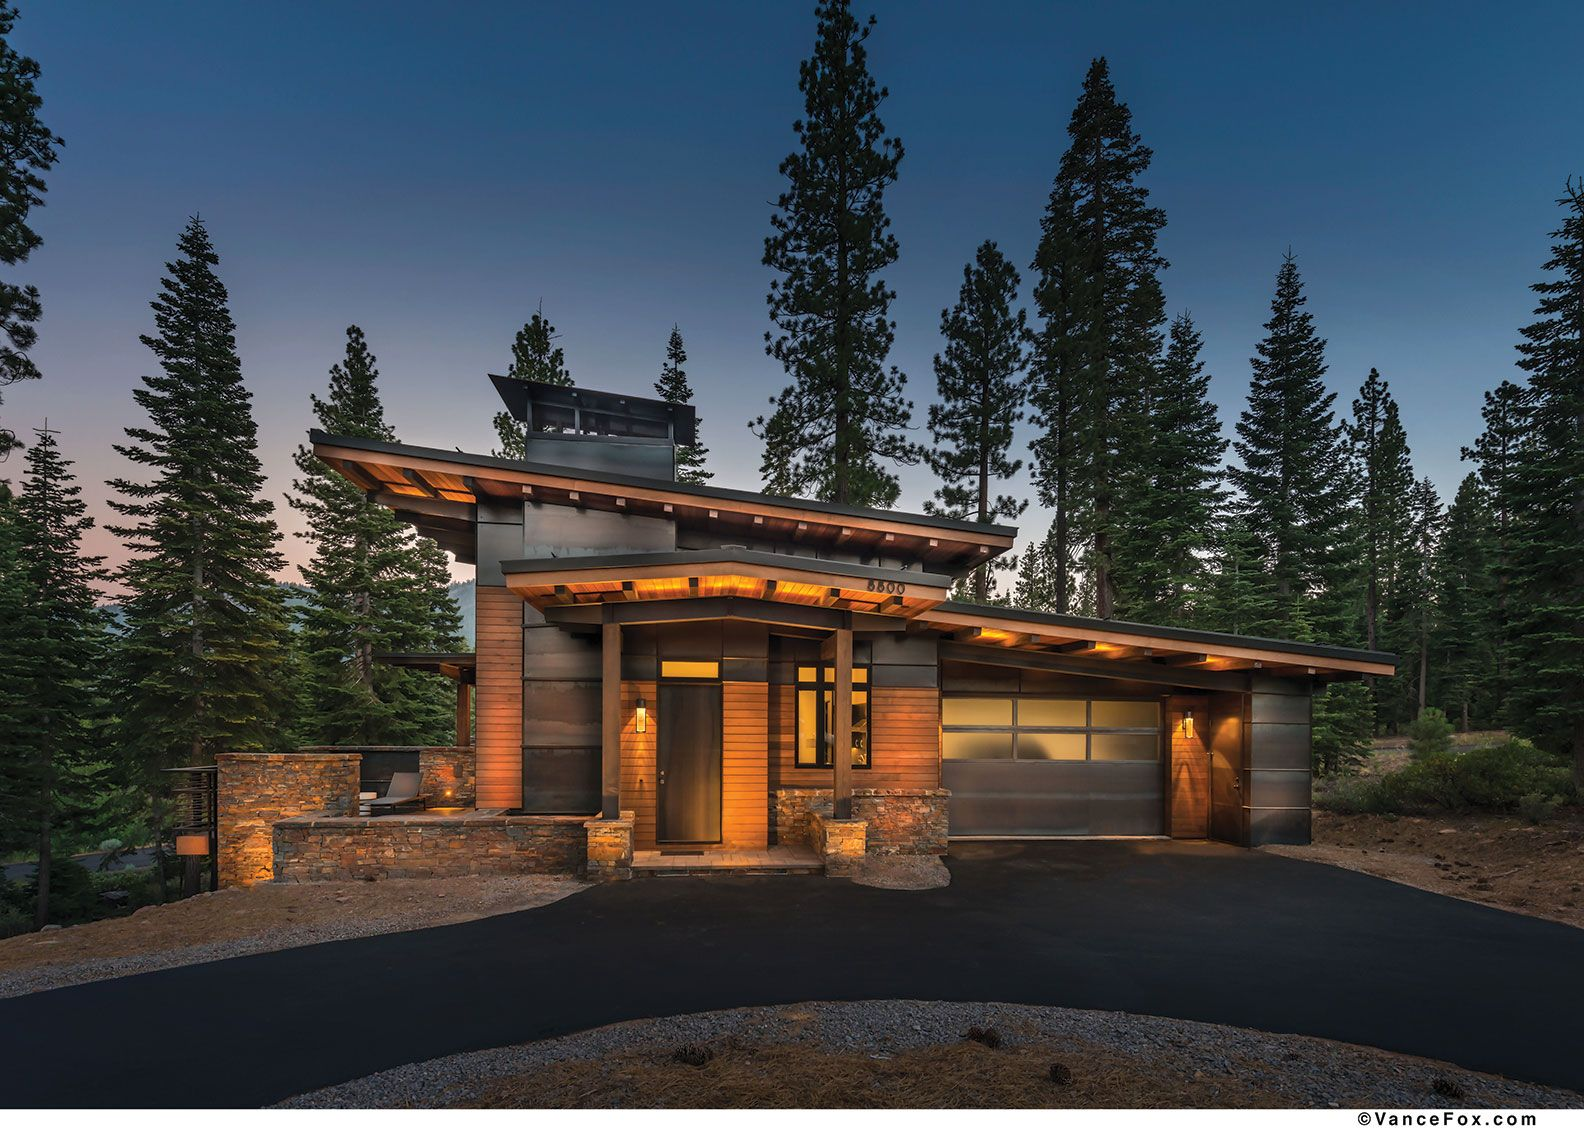 Montana Community Moves Forward With Plans For A Tiny: Mountain Home #mountainhome #home #tahoe